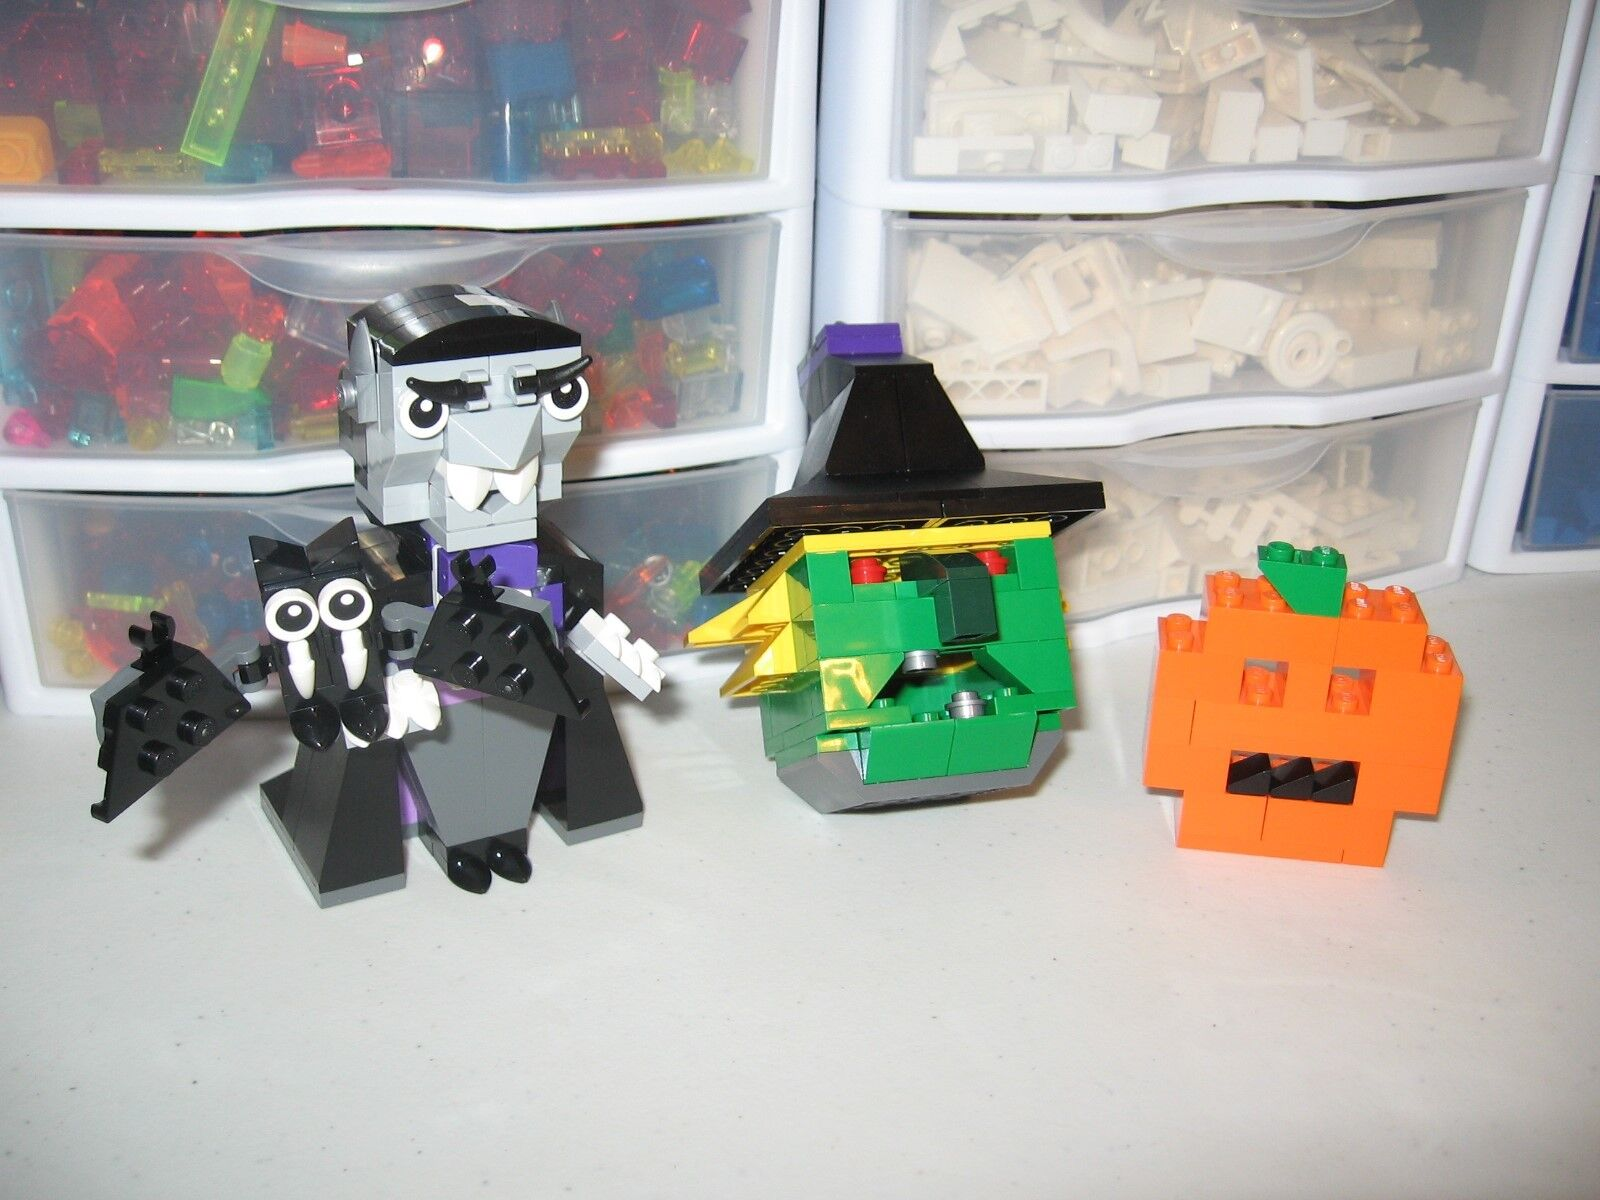 LEGO     HALLOWEEN        BUILT FOR DISPLAY AND PICTURES